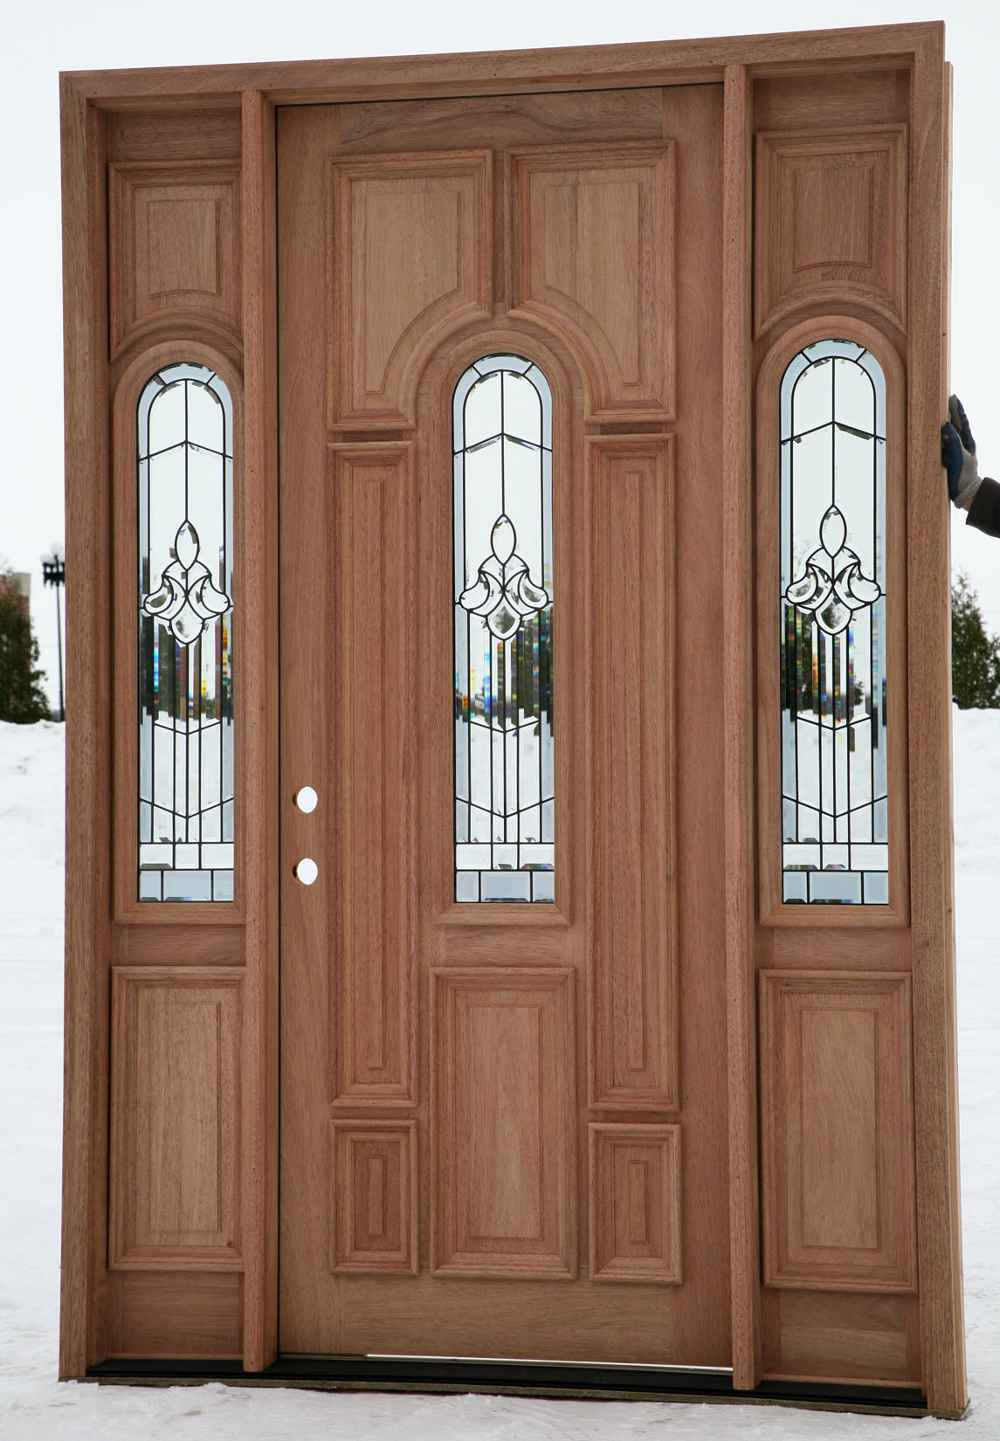 cheap exterior doors feel the home ForCheap Exterior Doors For Home